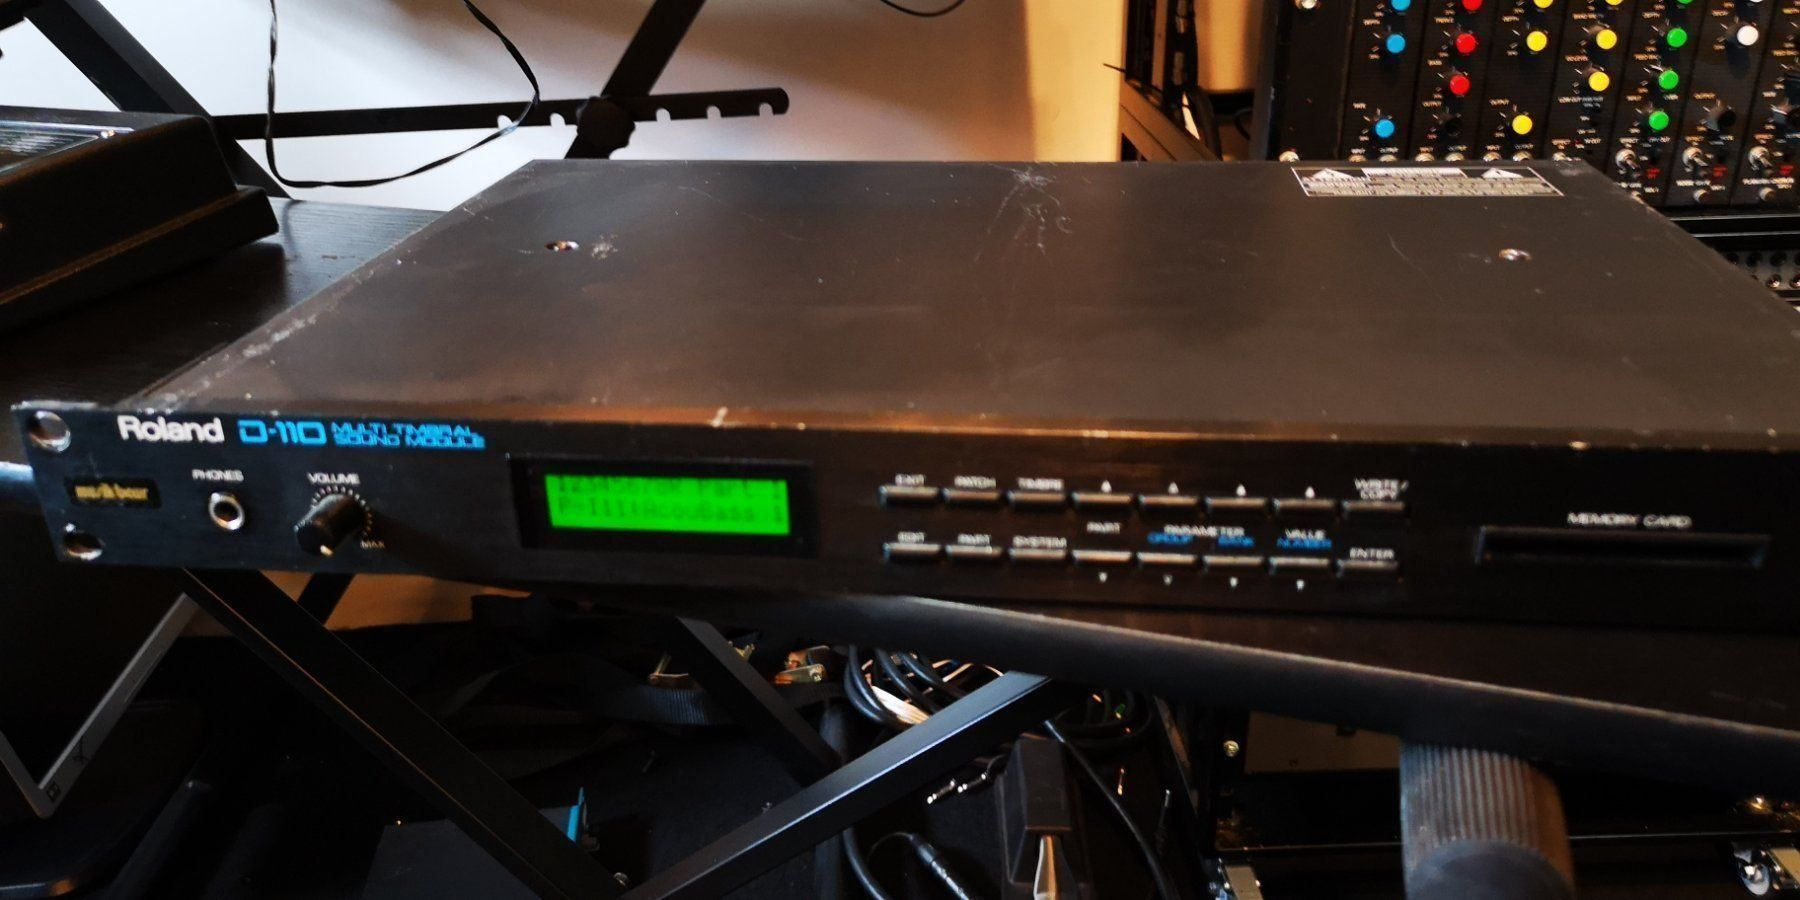 Roland D-110 Synthesizer Modul